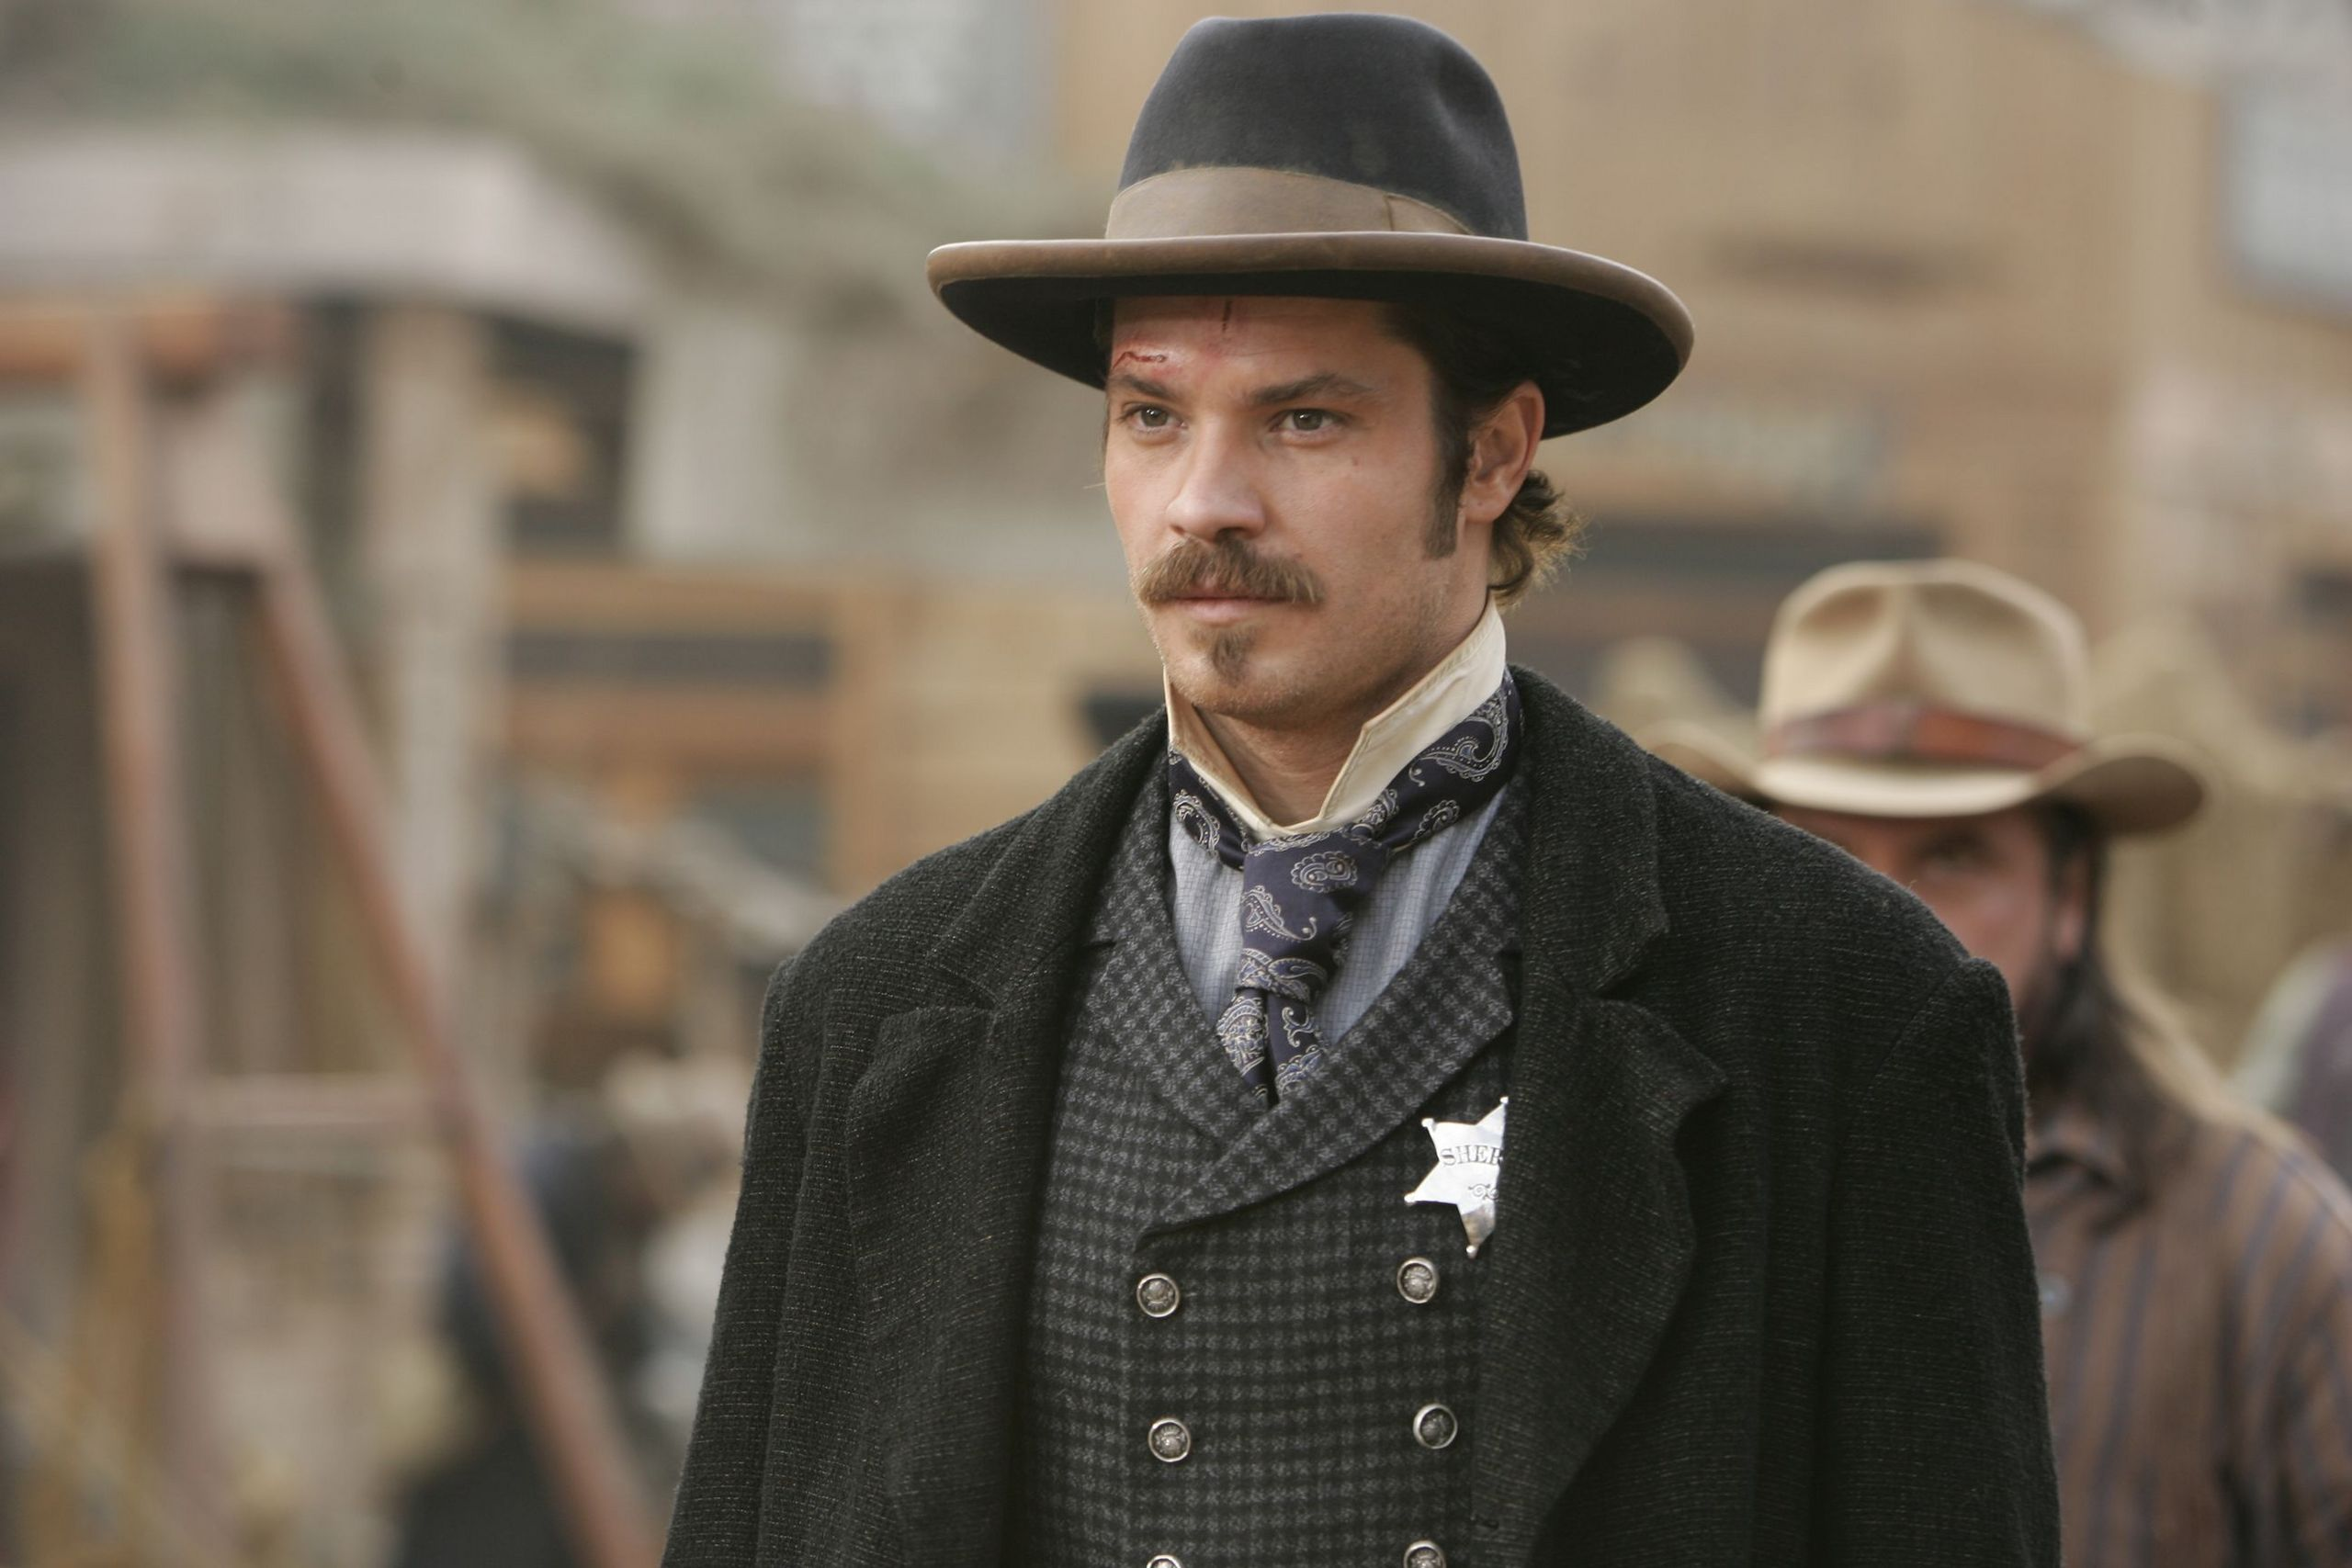 Timothy olyphant, Sheriff and Costumes on Pinterest